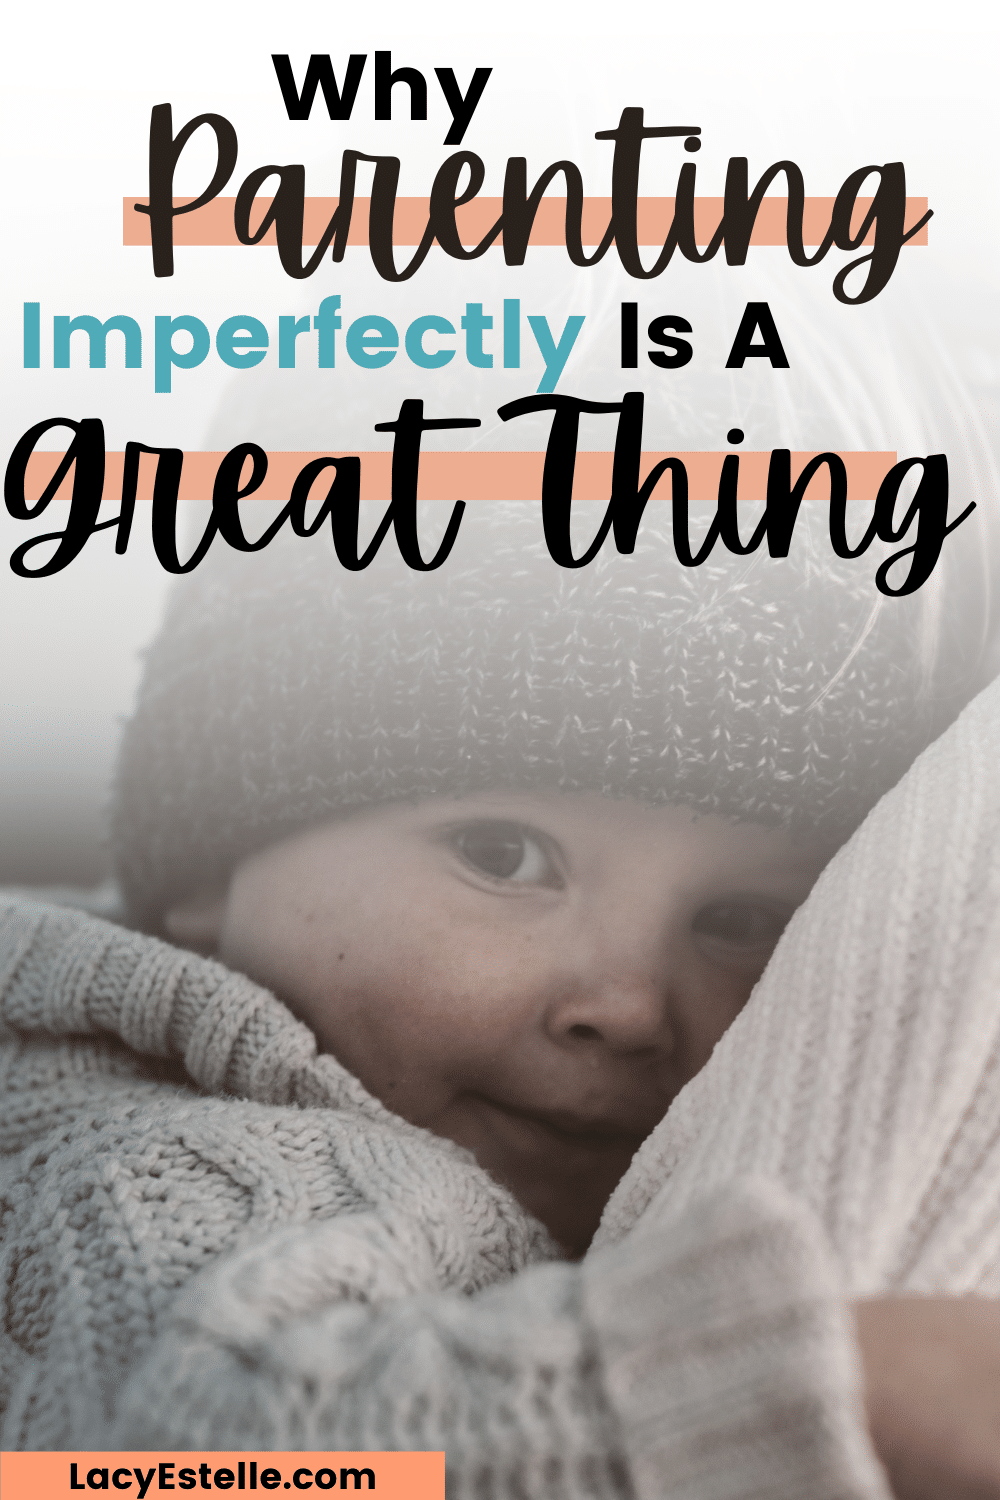 Parent Imperfectly, it's the only way any of us do it.